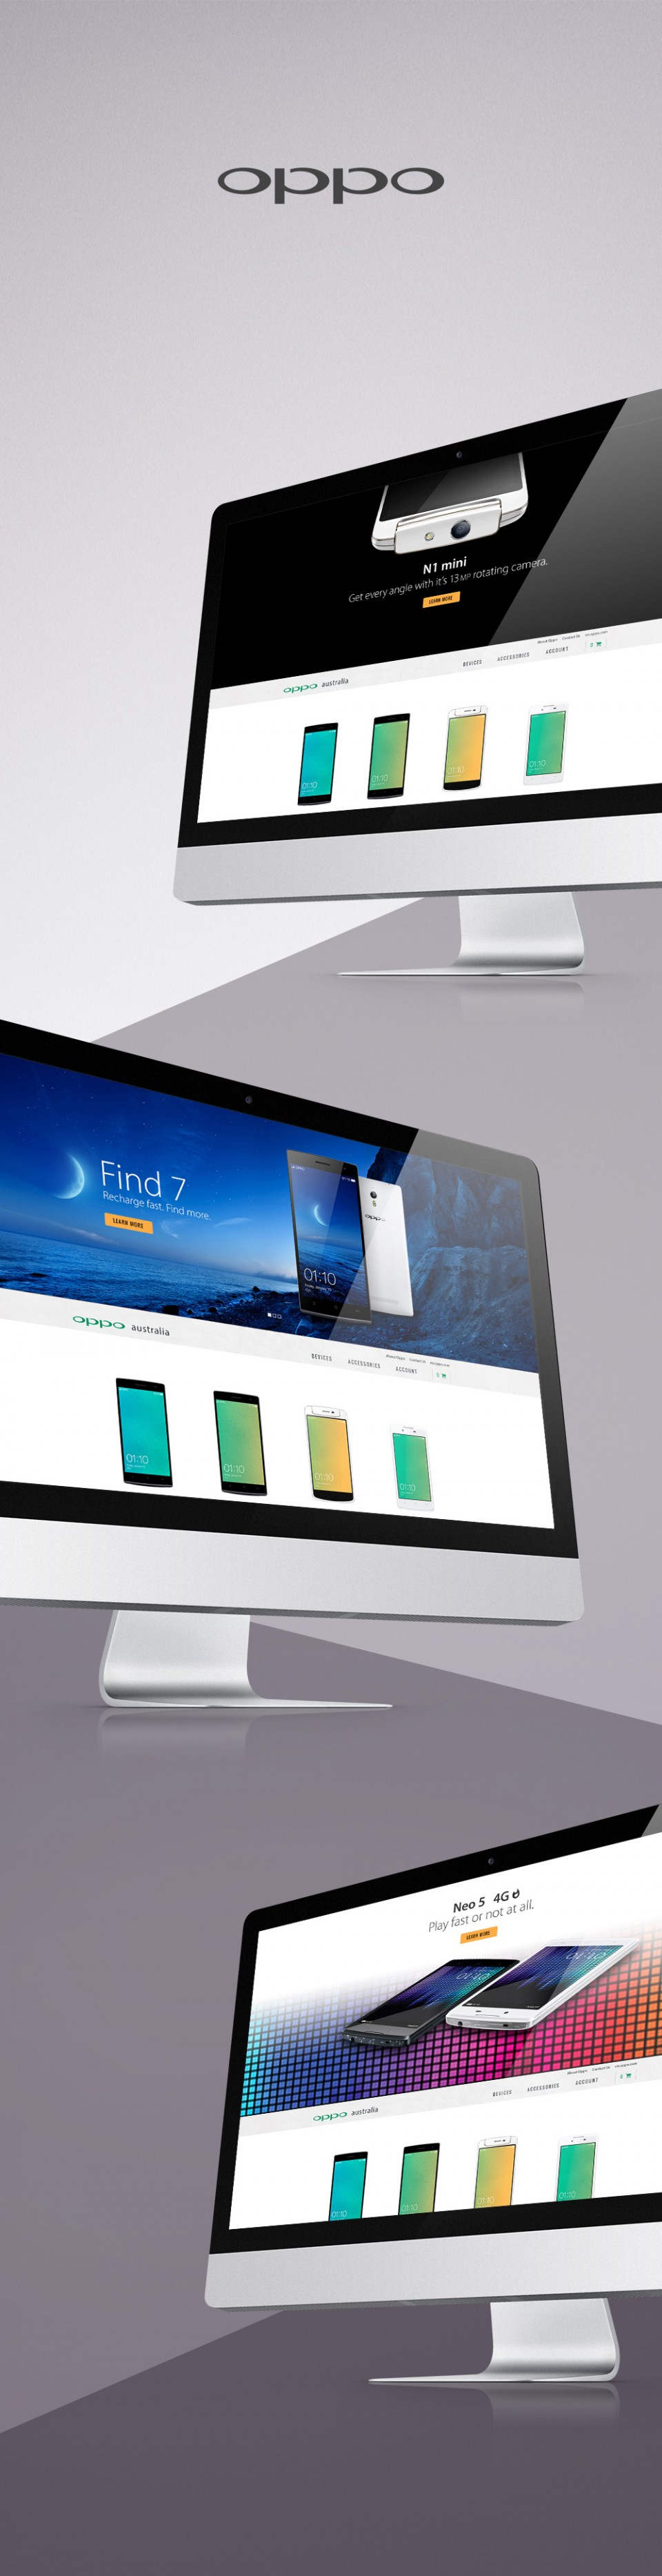 OPPO Website design